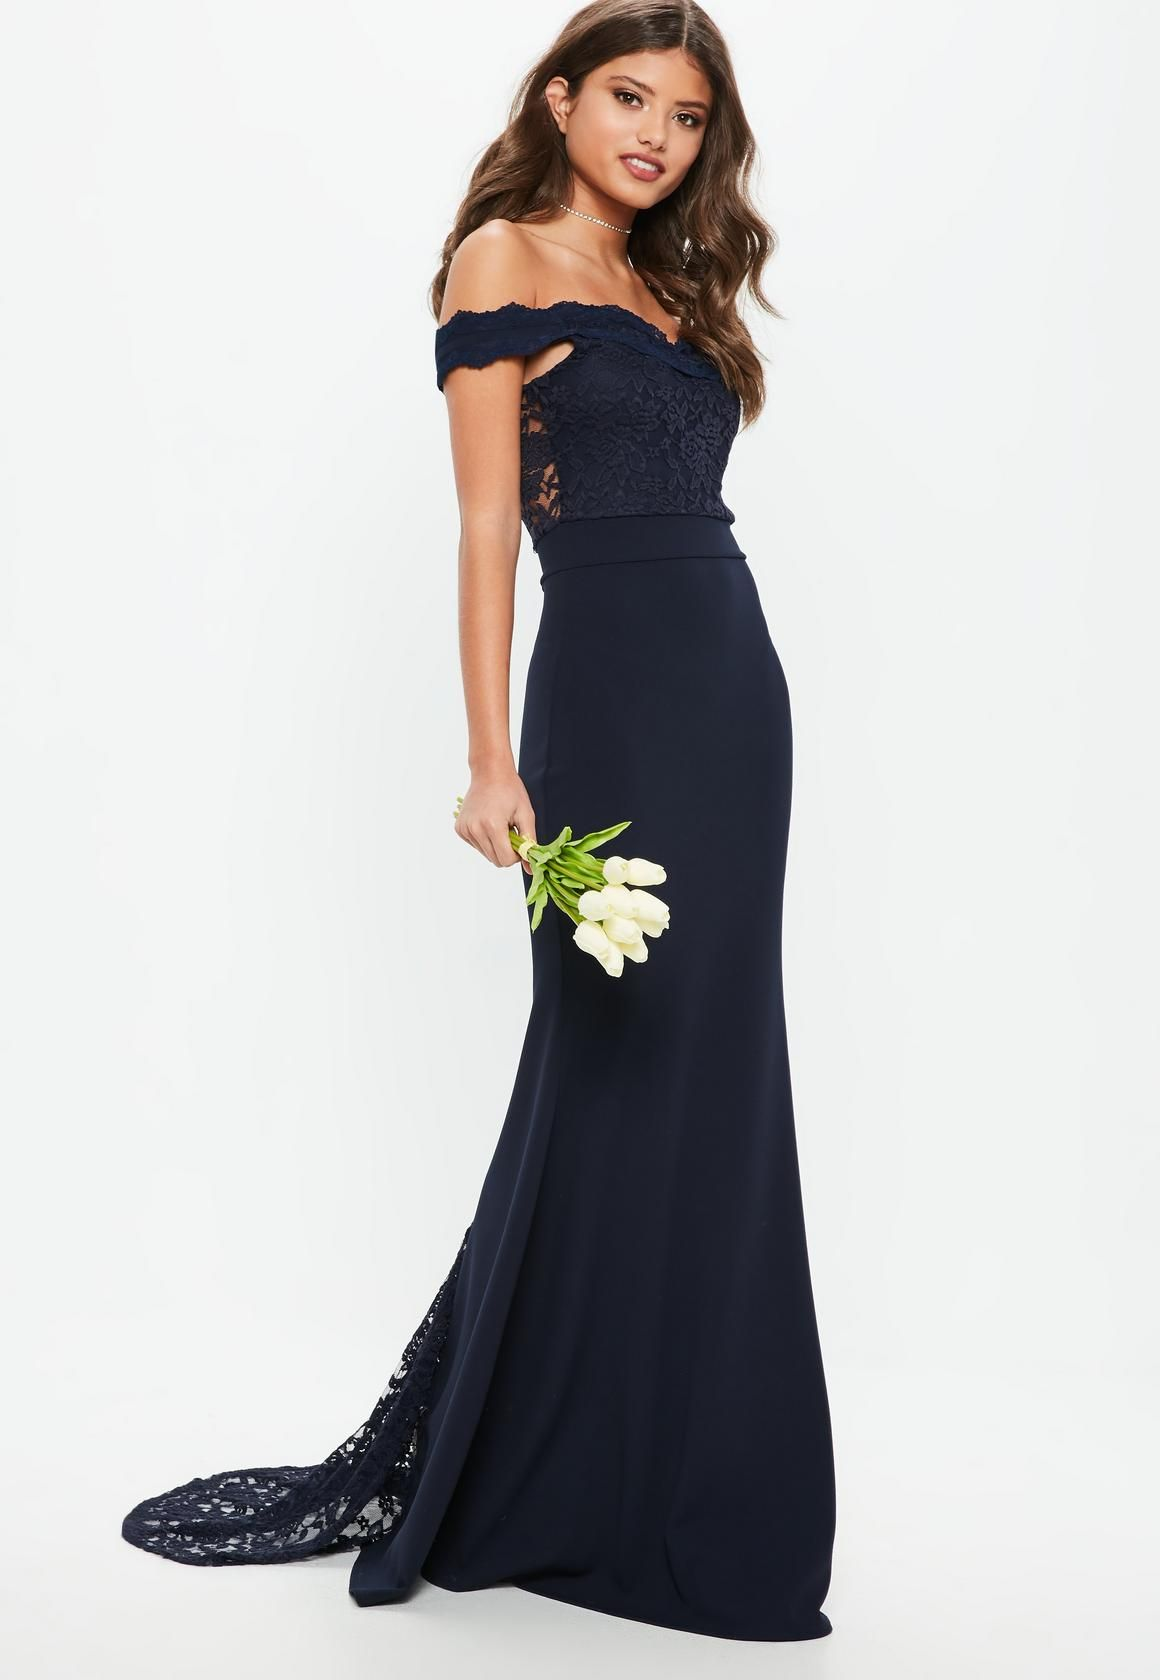 c9a7013649 Missguided Bridesmaid Navy Bardot Lace Insert Fishtail Maxi Dress in ...